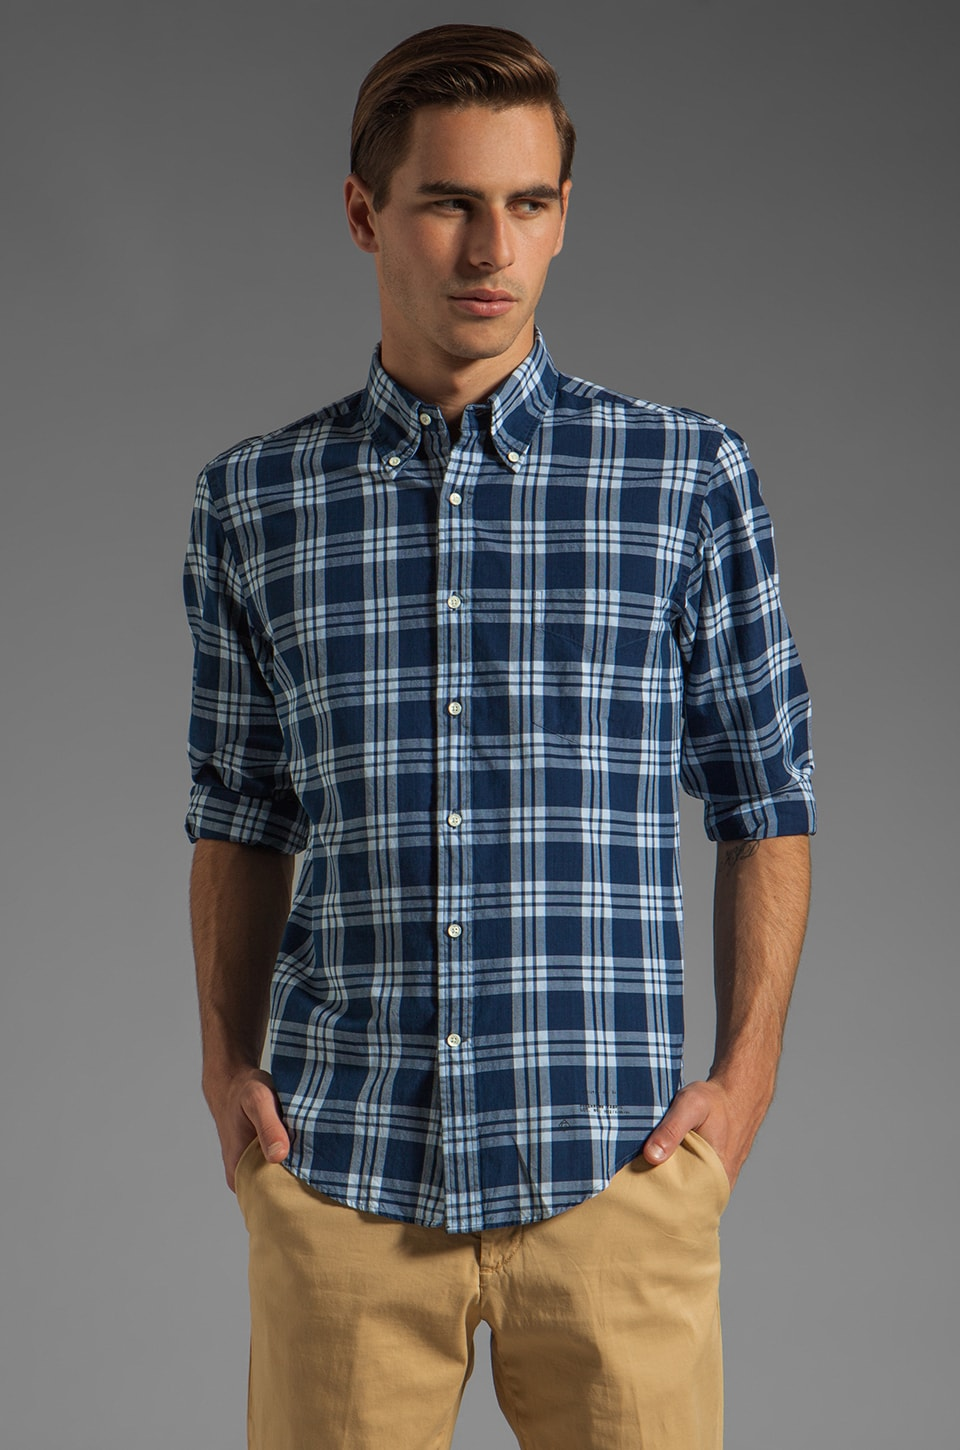 GANT Rugger Indigo Madras E-Z OBD Shirt in Navy